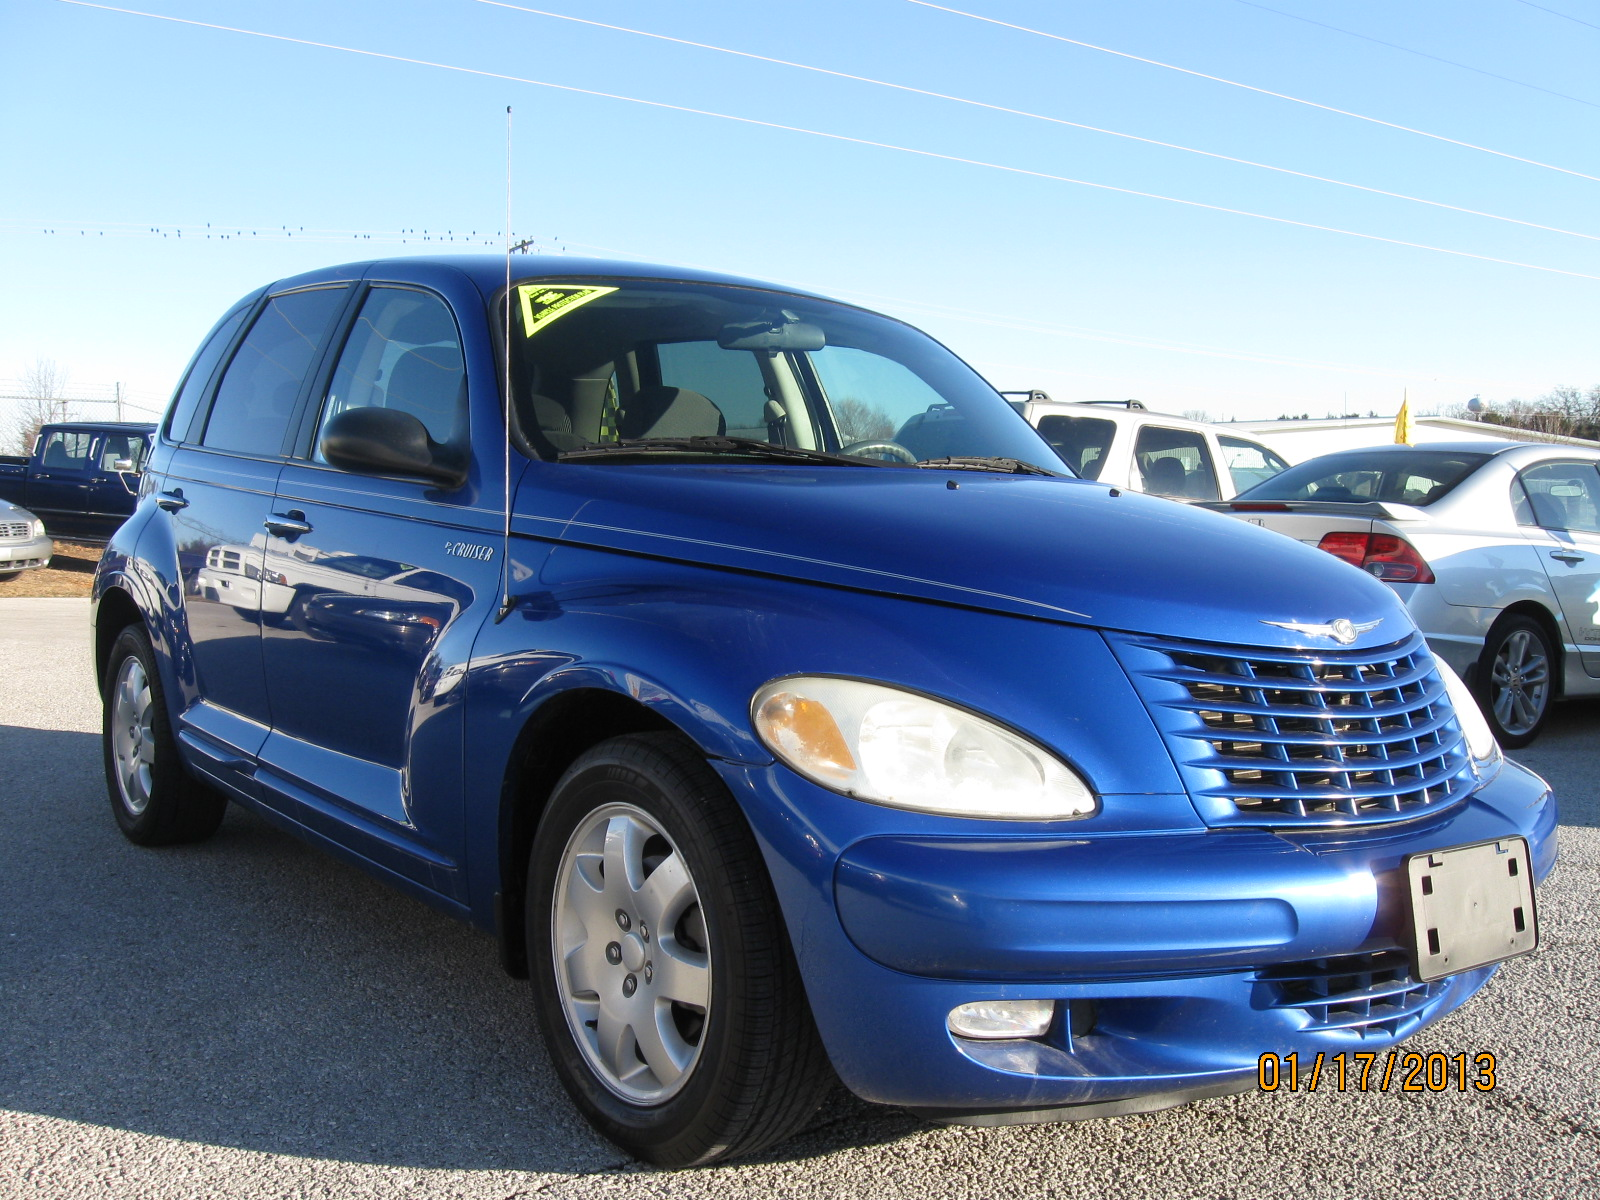 2003 chrysler pt cruiser problems defects complaints. Black Bedroom Furniture Sets. Home Design Ideas